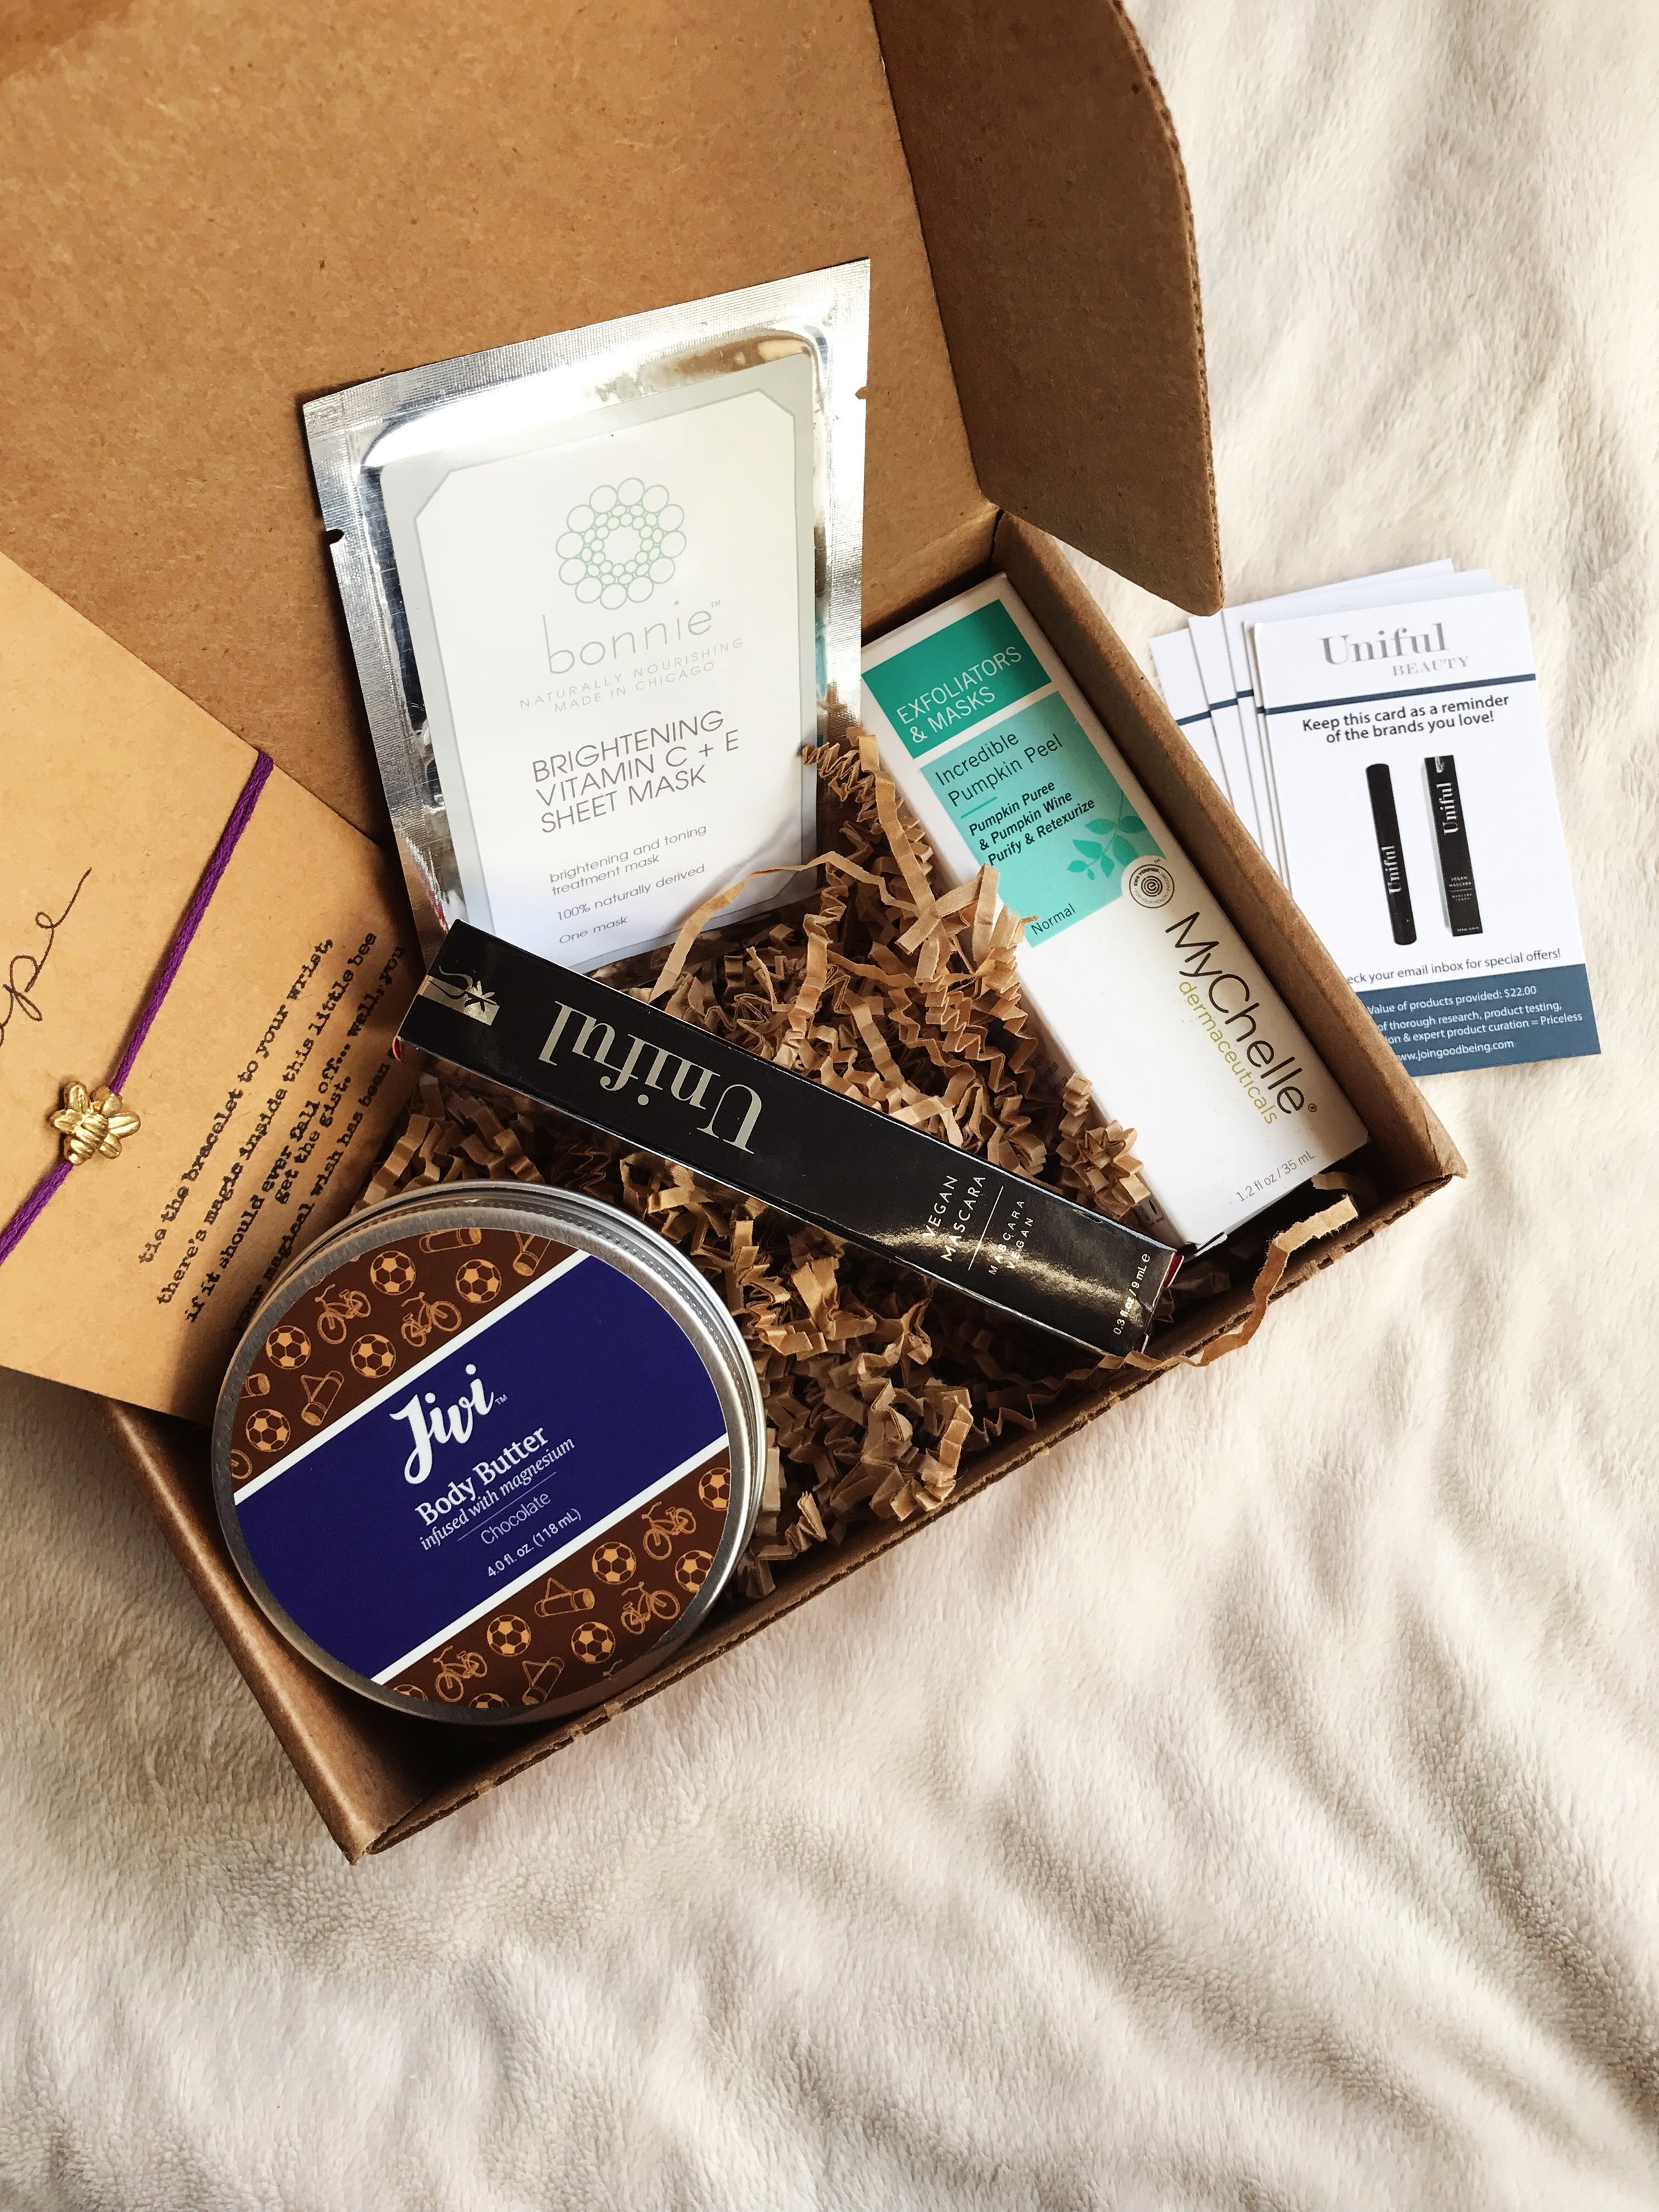 Goodbeing Green Beauty Subscription Box